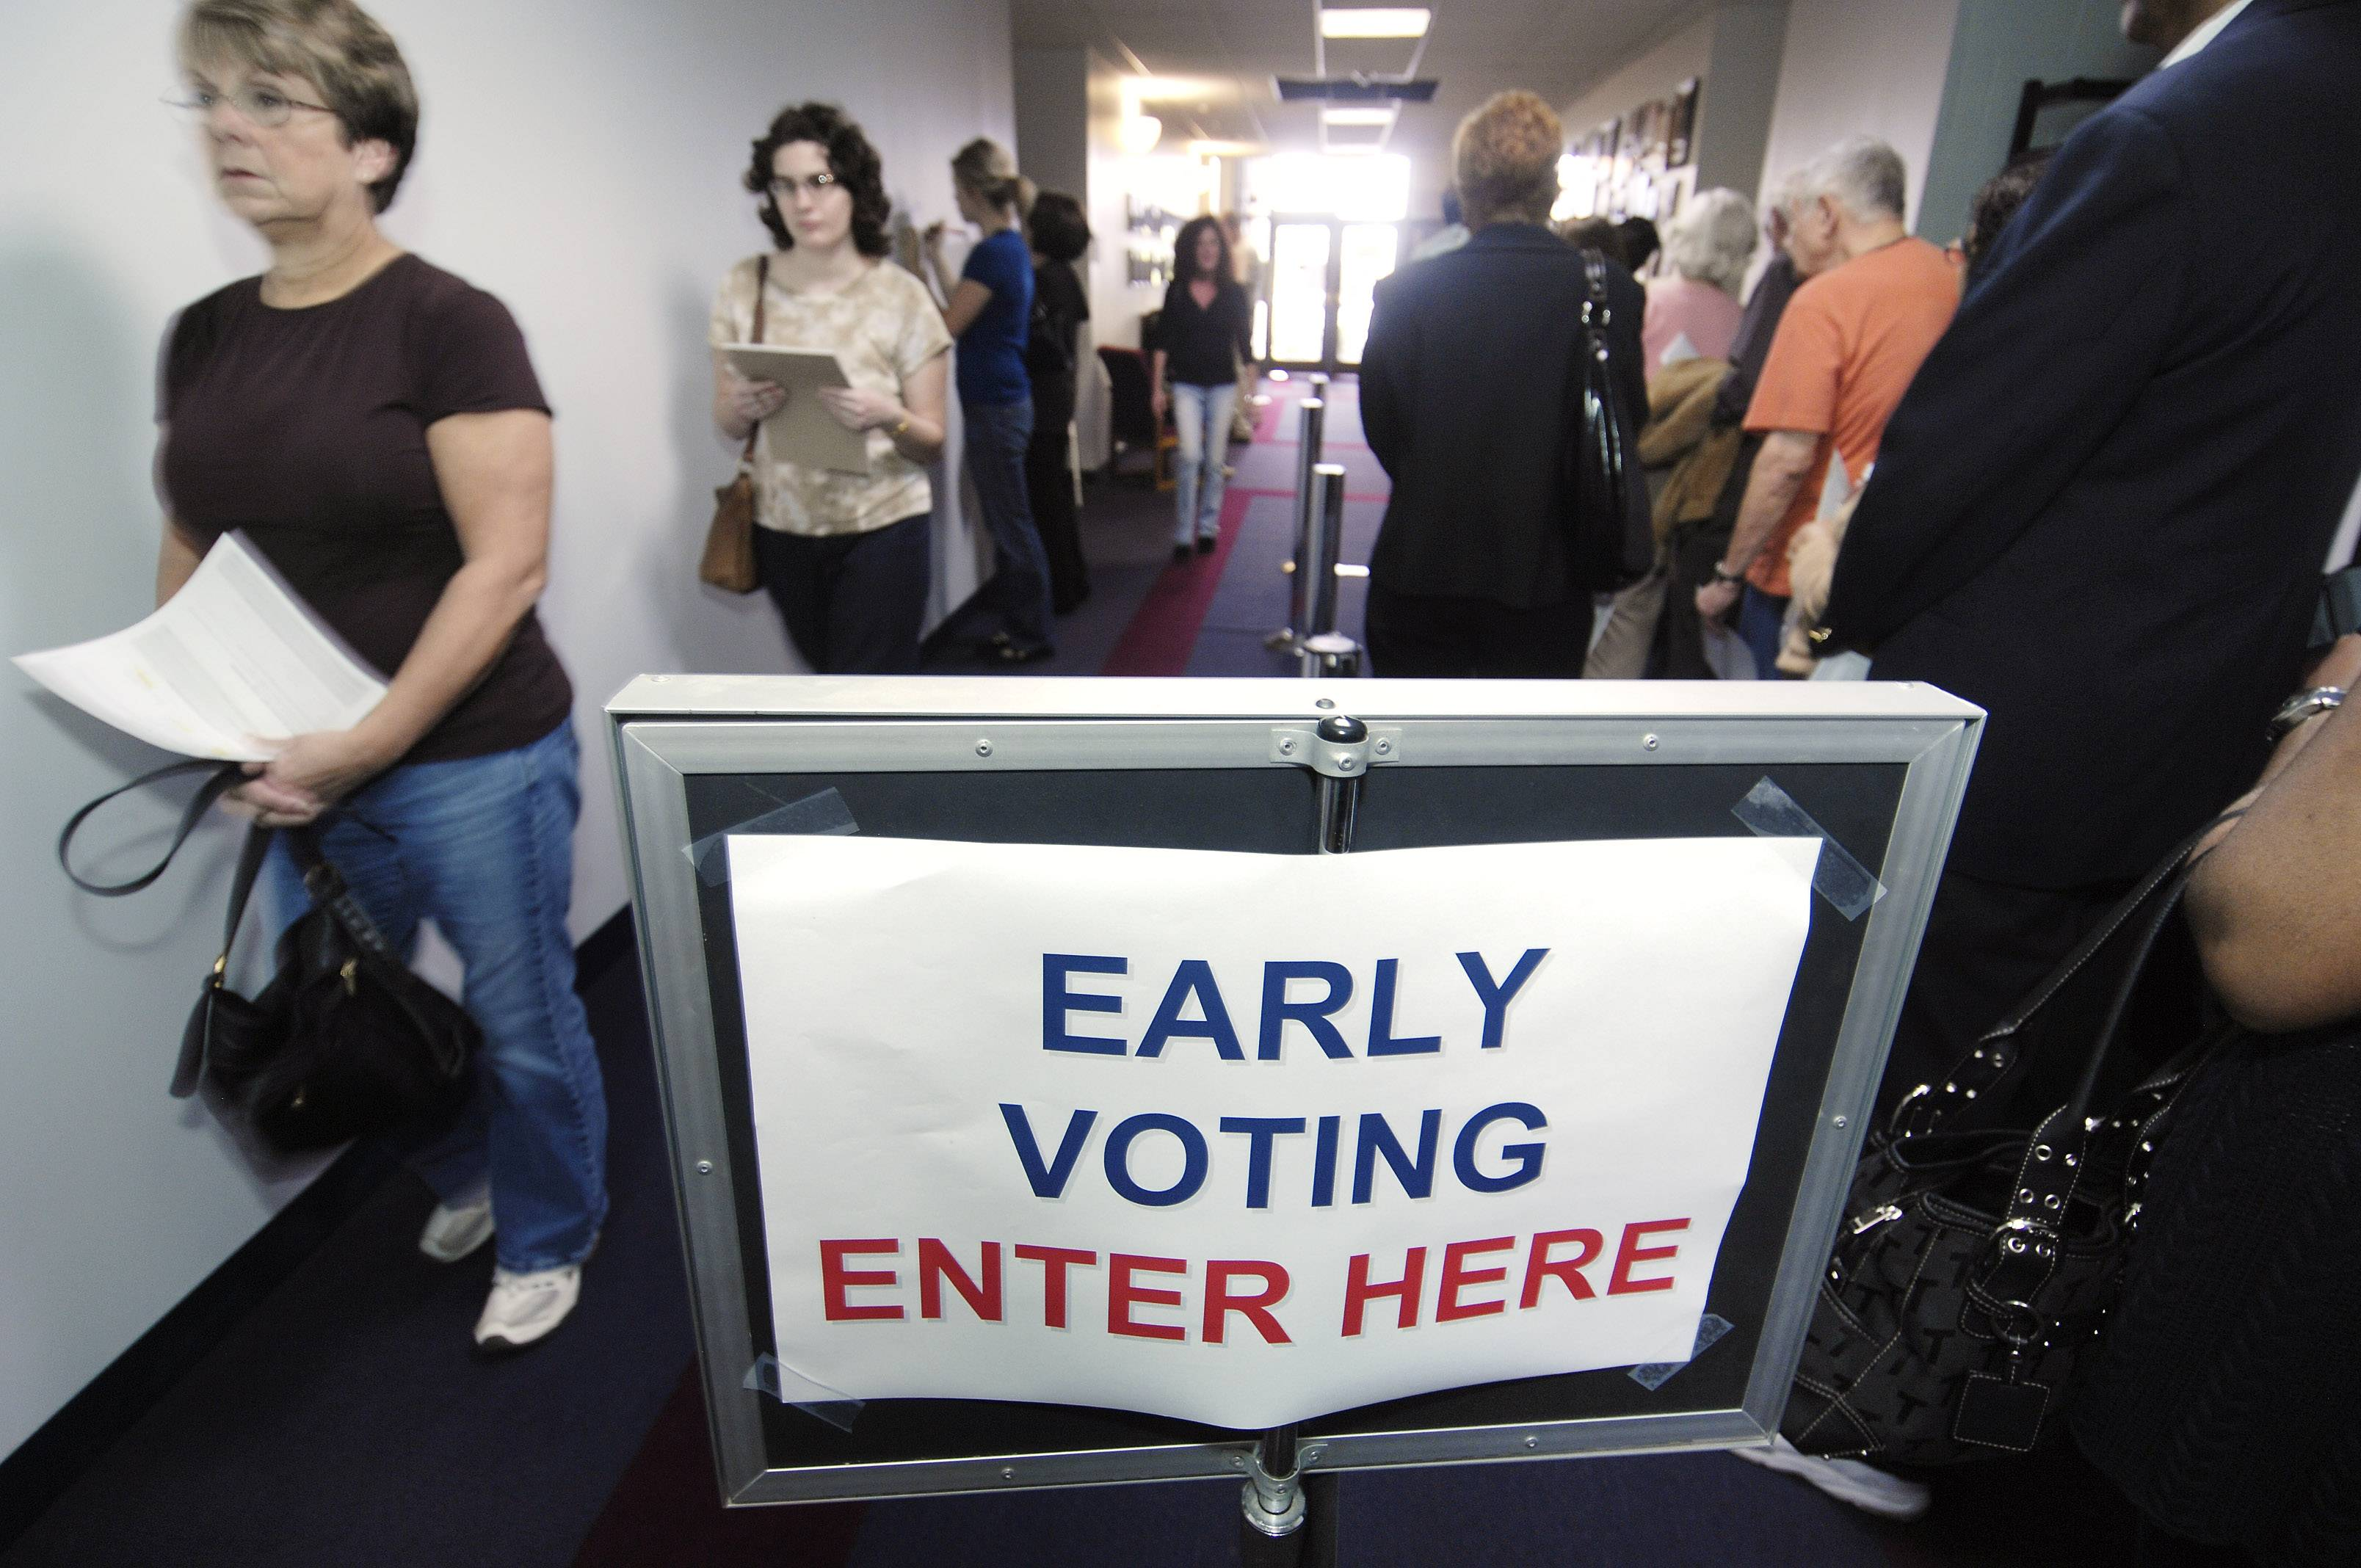 Early voting has grown in popularity each year since its introduction in Illinois in 2006. Election officials expect more voters to use the option this year than ever before.